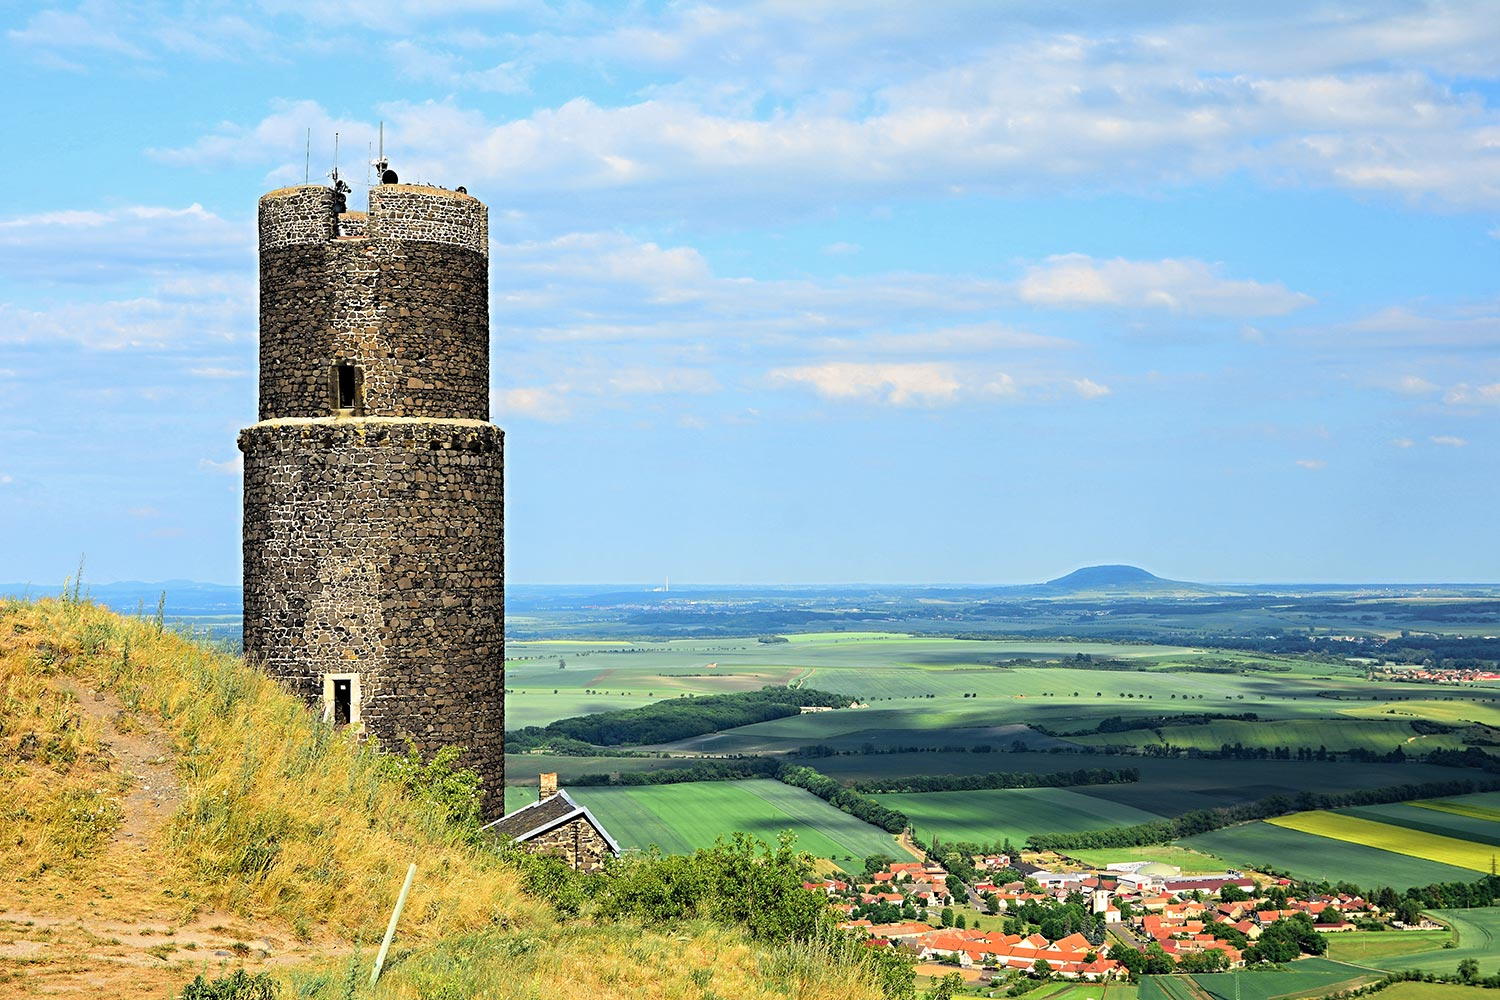 The Black Tower of Hazmburk Castle, Czechia